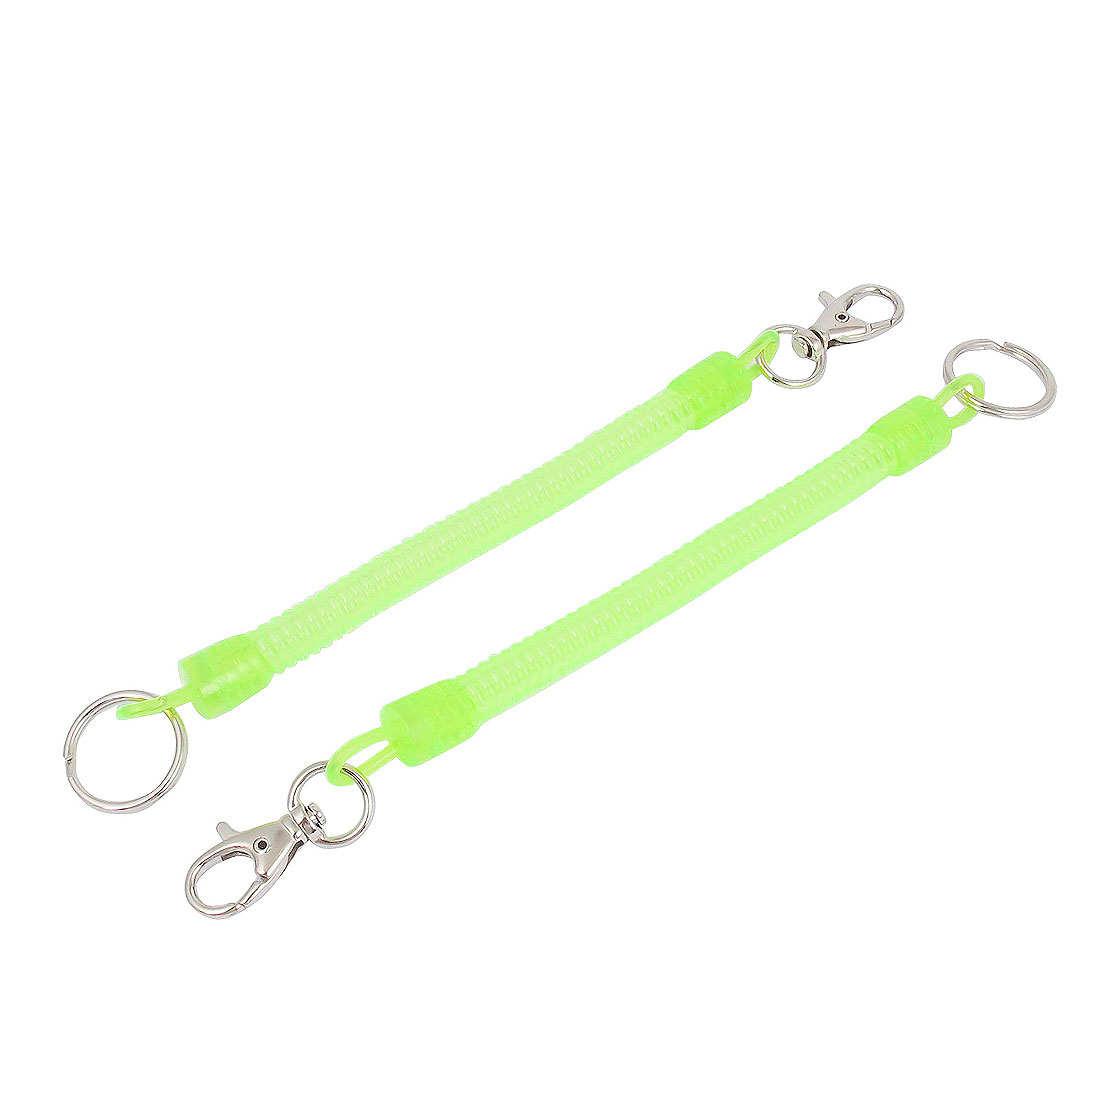 2 Pcs Lobster Clasp Stretchy Sprial Spring Coil Cord Keychain Strap Key Holder Yellow Green